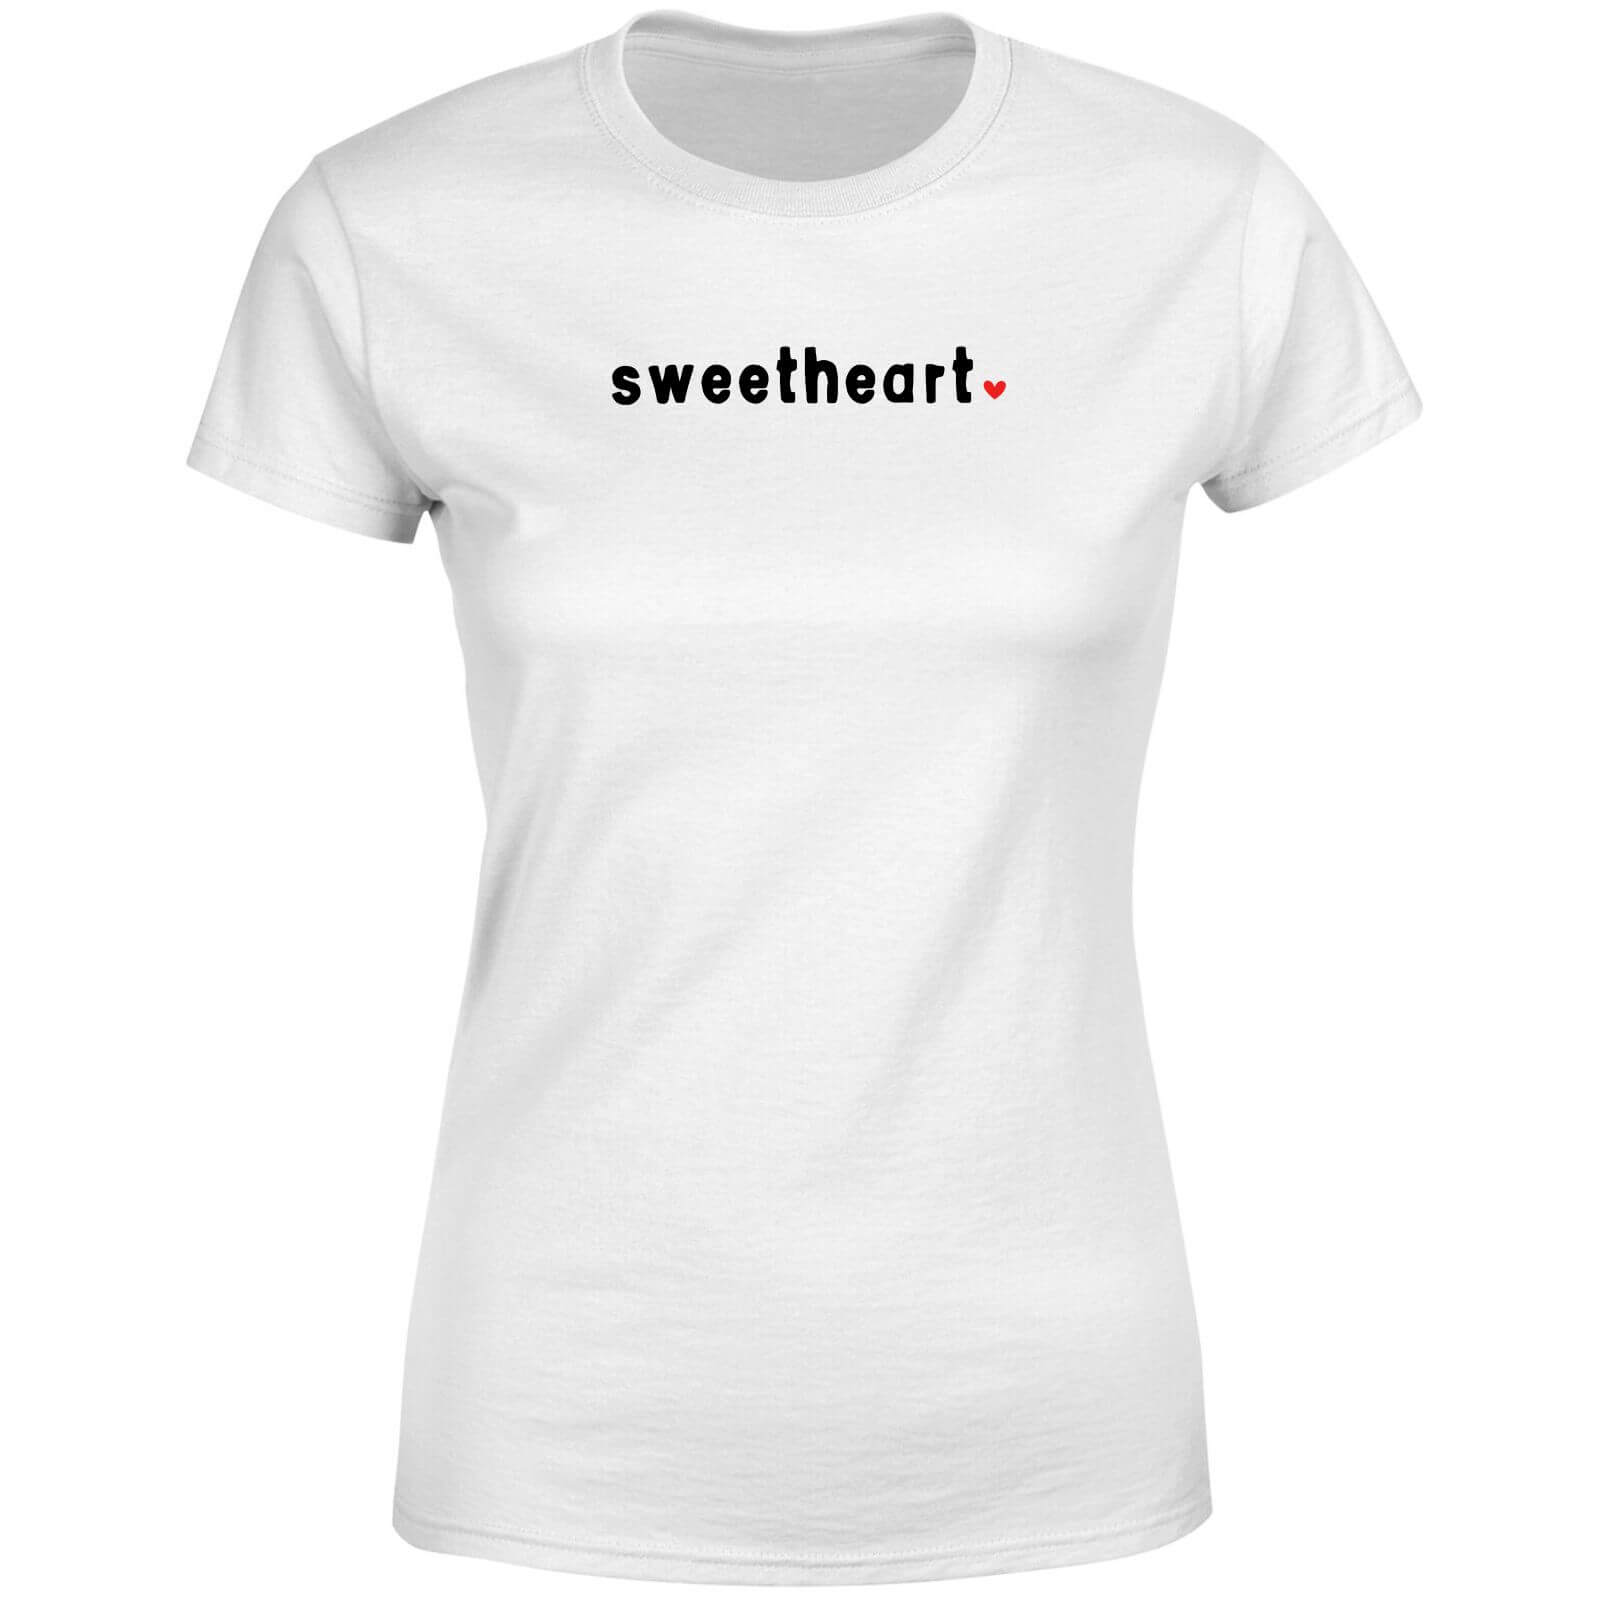 Sweetheart Women